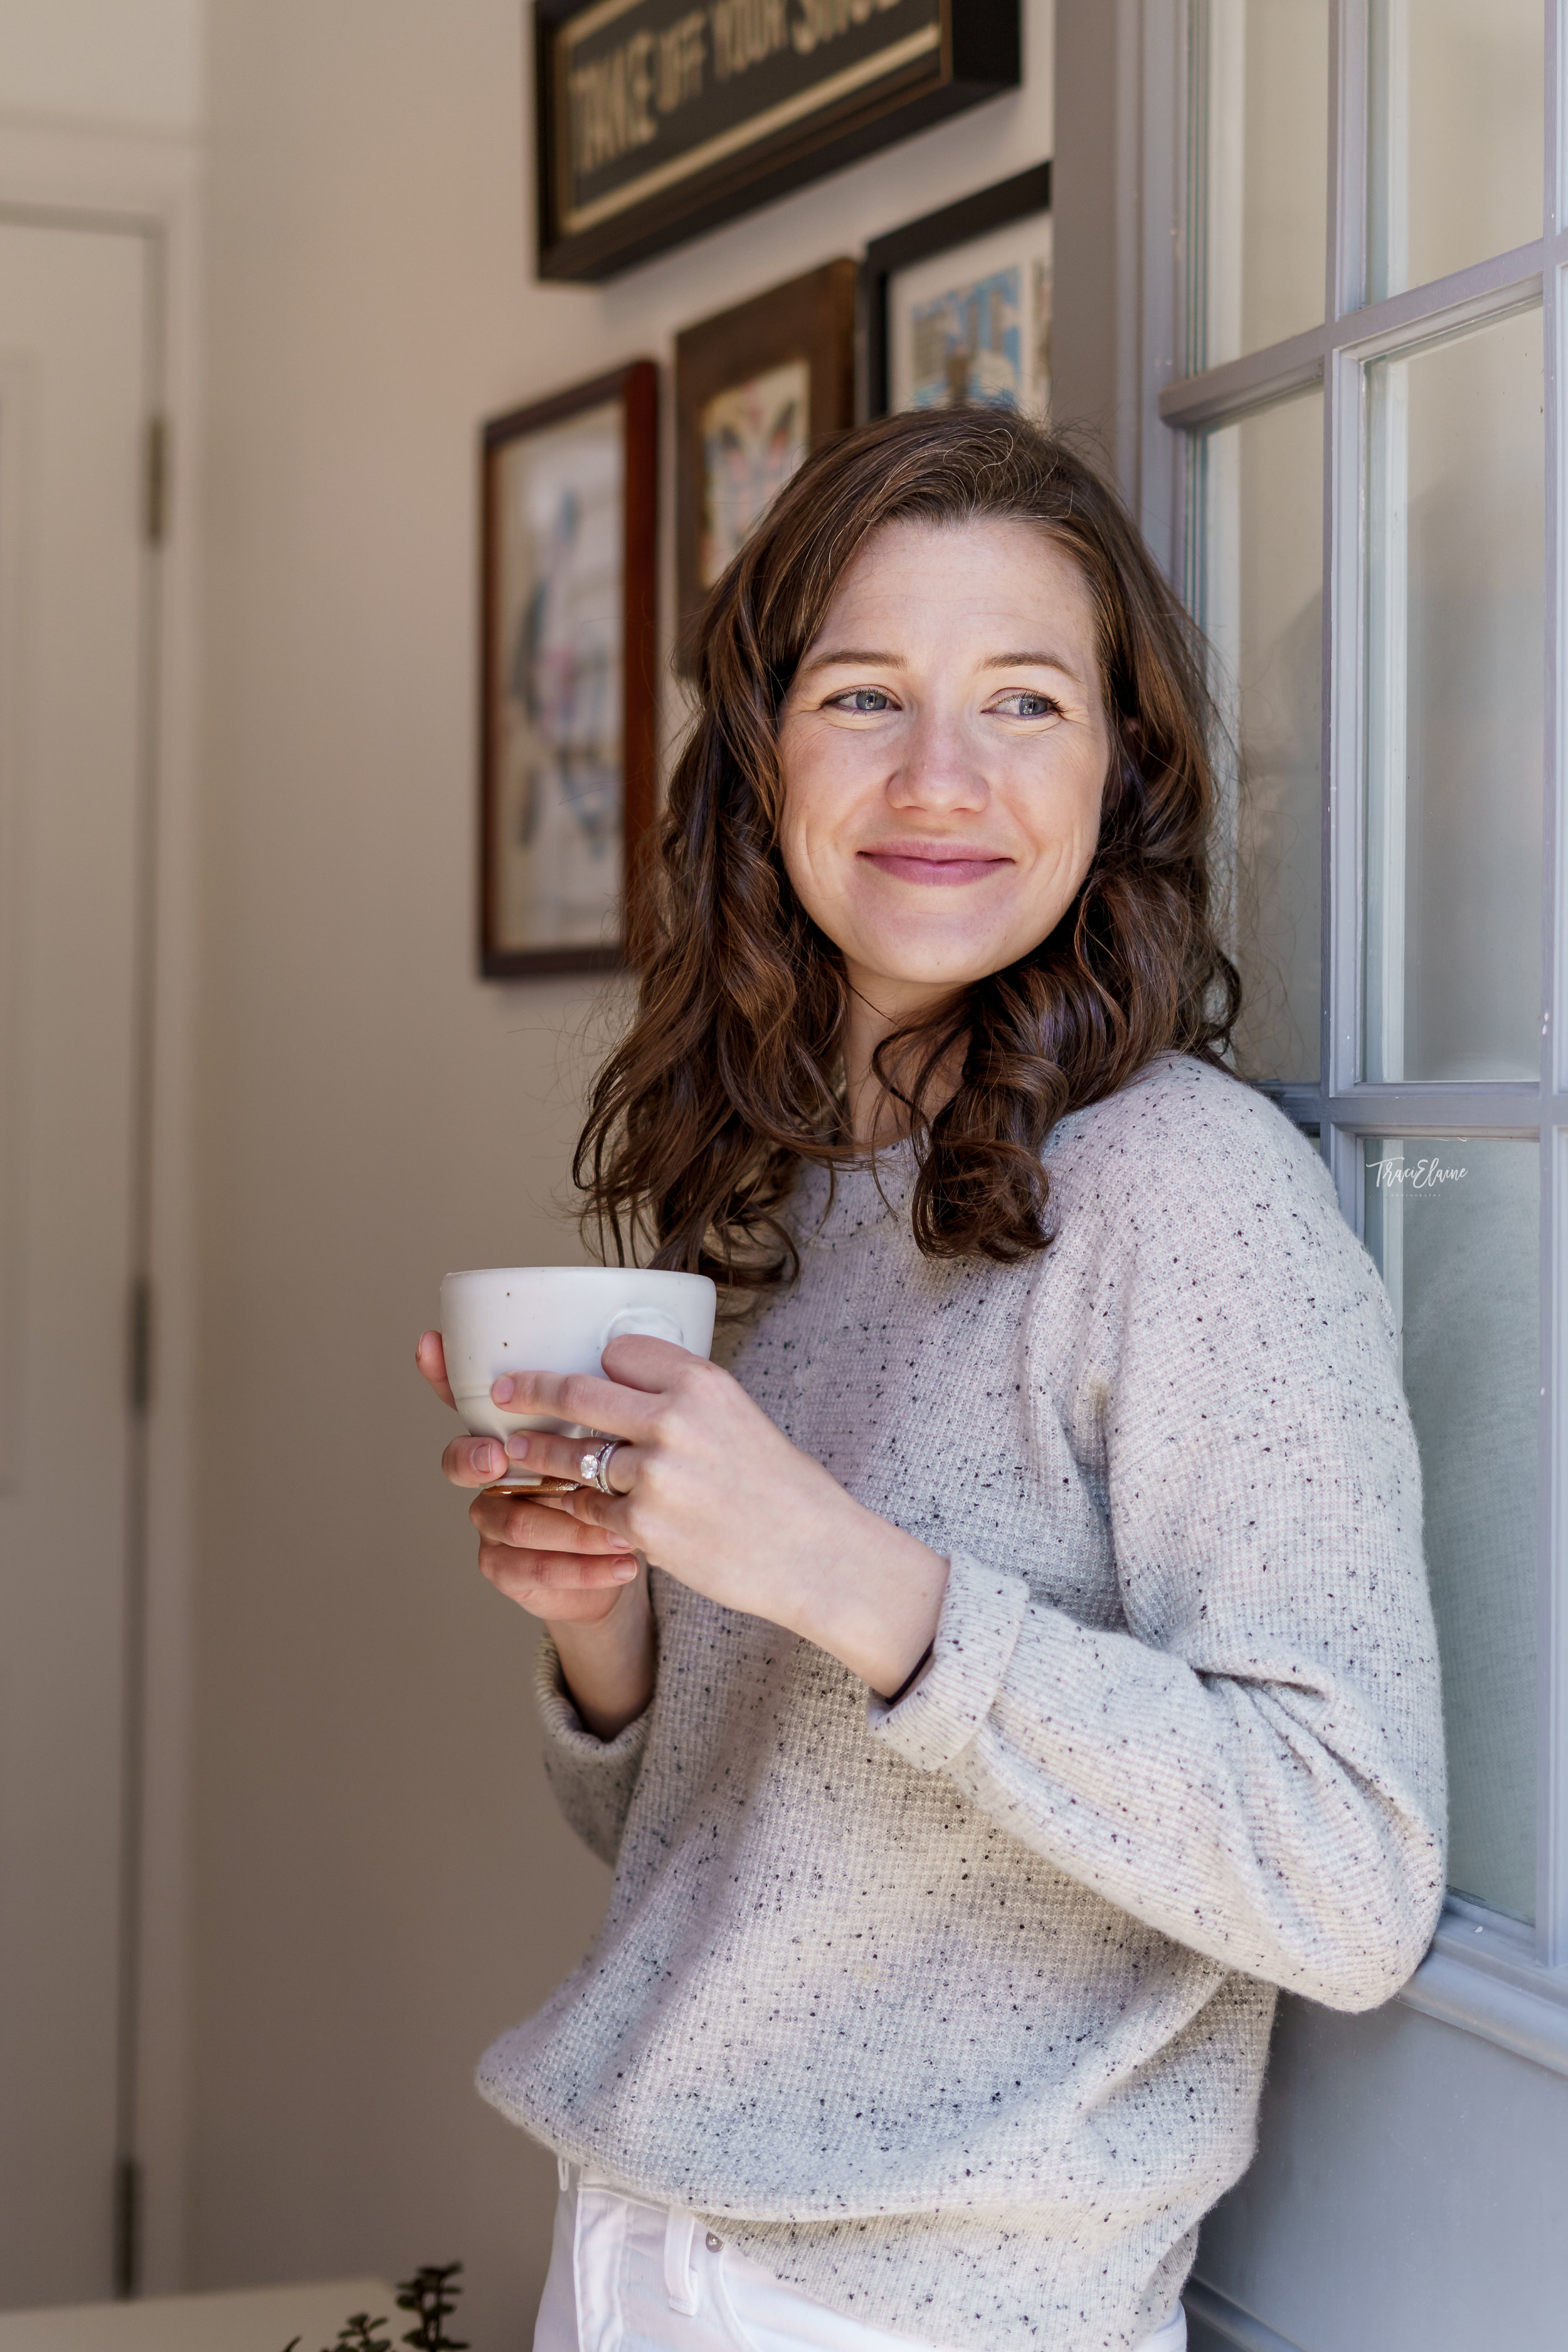 branding image, woman looking outside, woman with coffee in hand, morning photo, woman standing against door